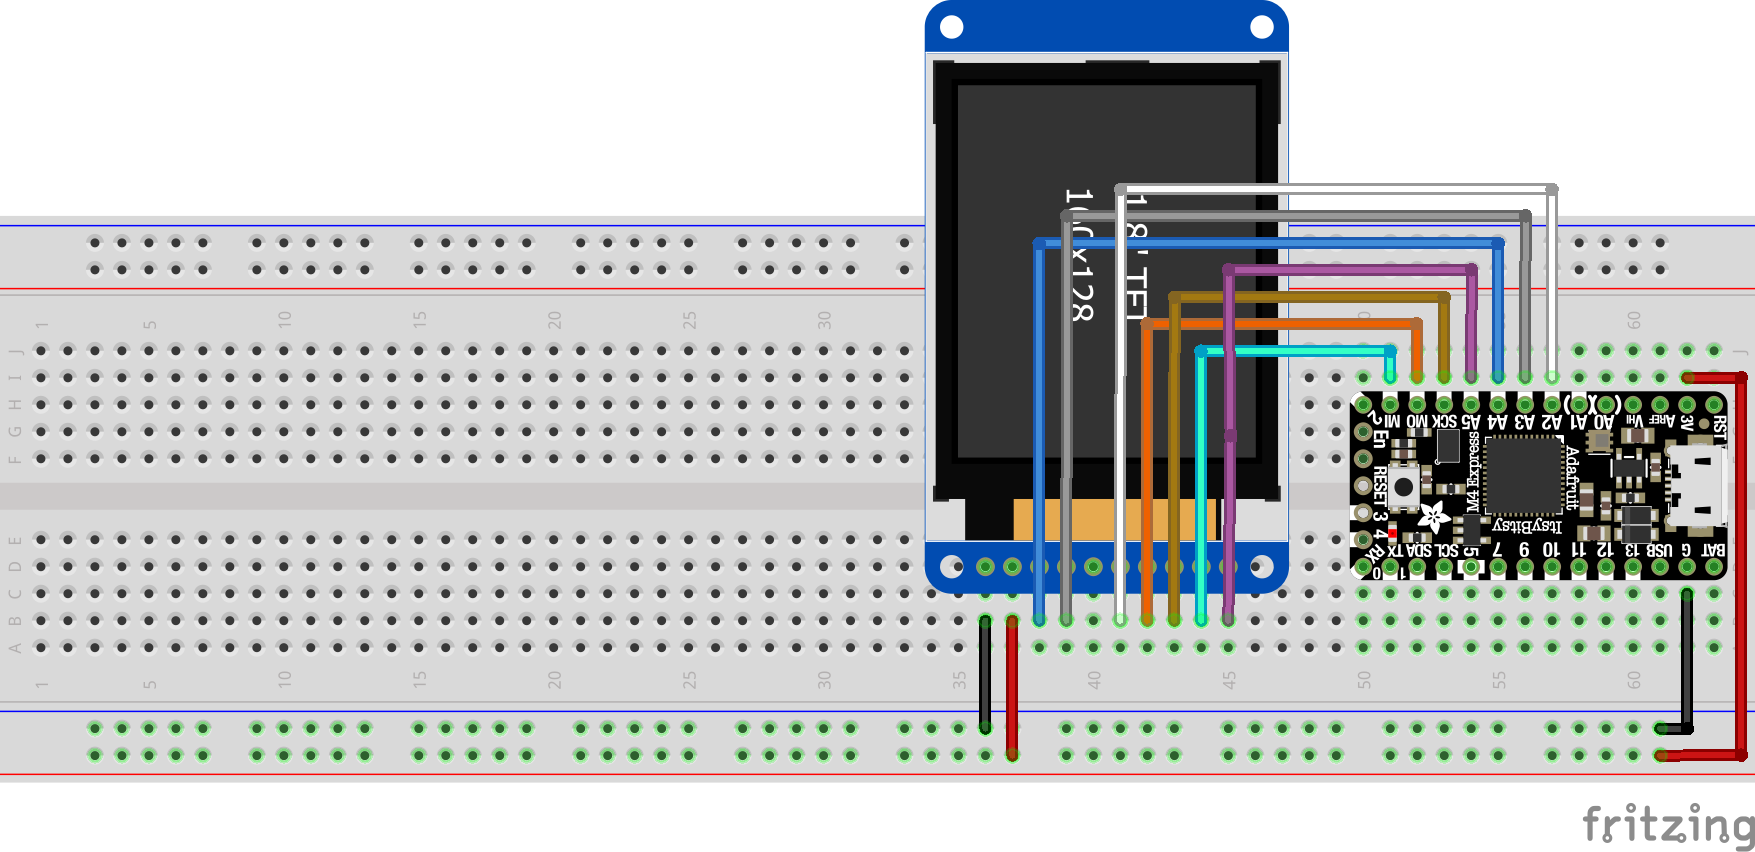 components_makecode-arcade-itsybitsy-m4-express-screen_bb.png